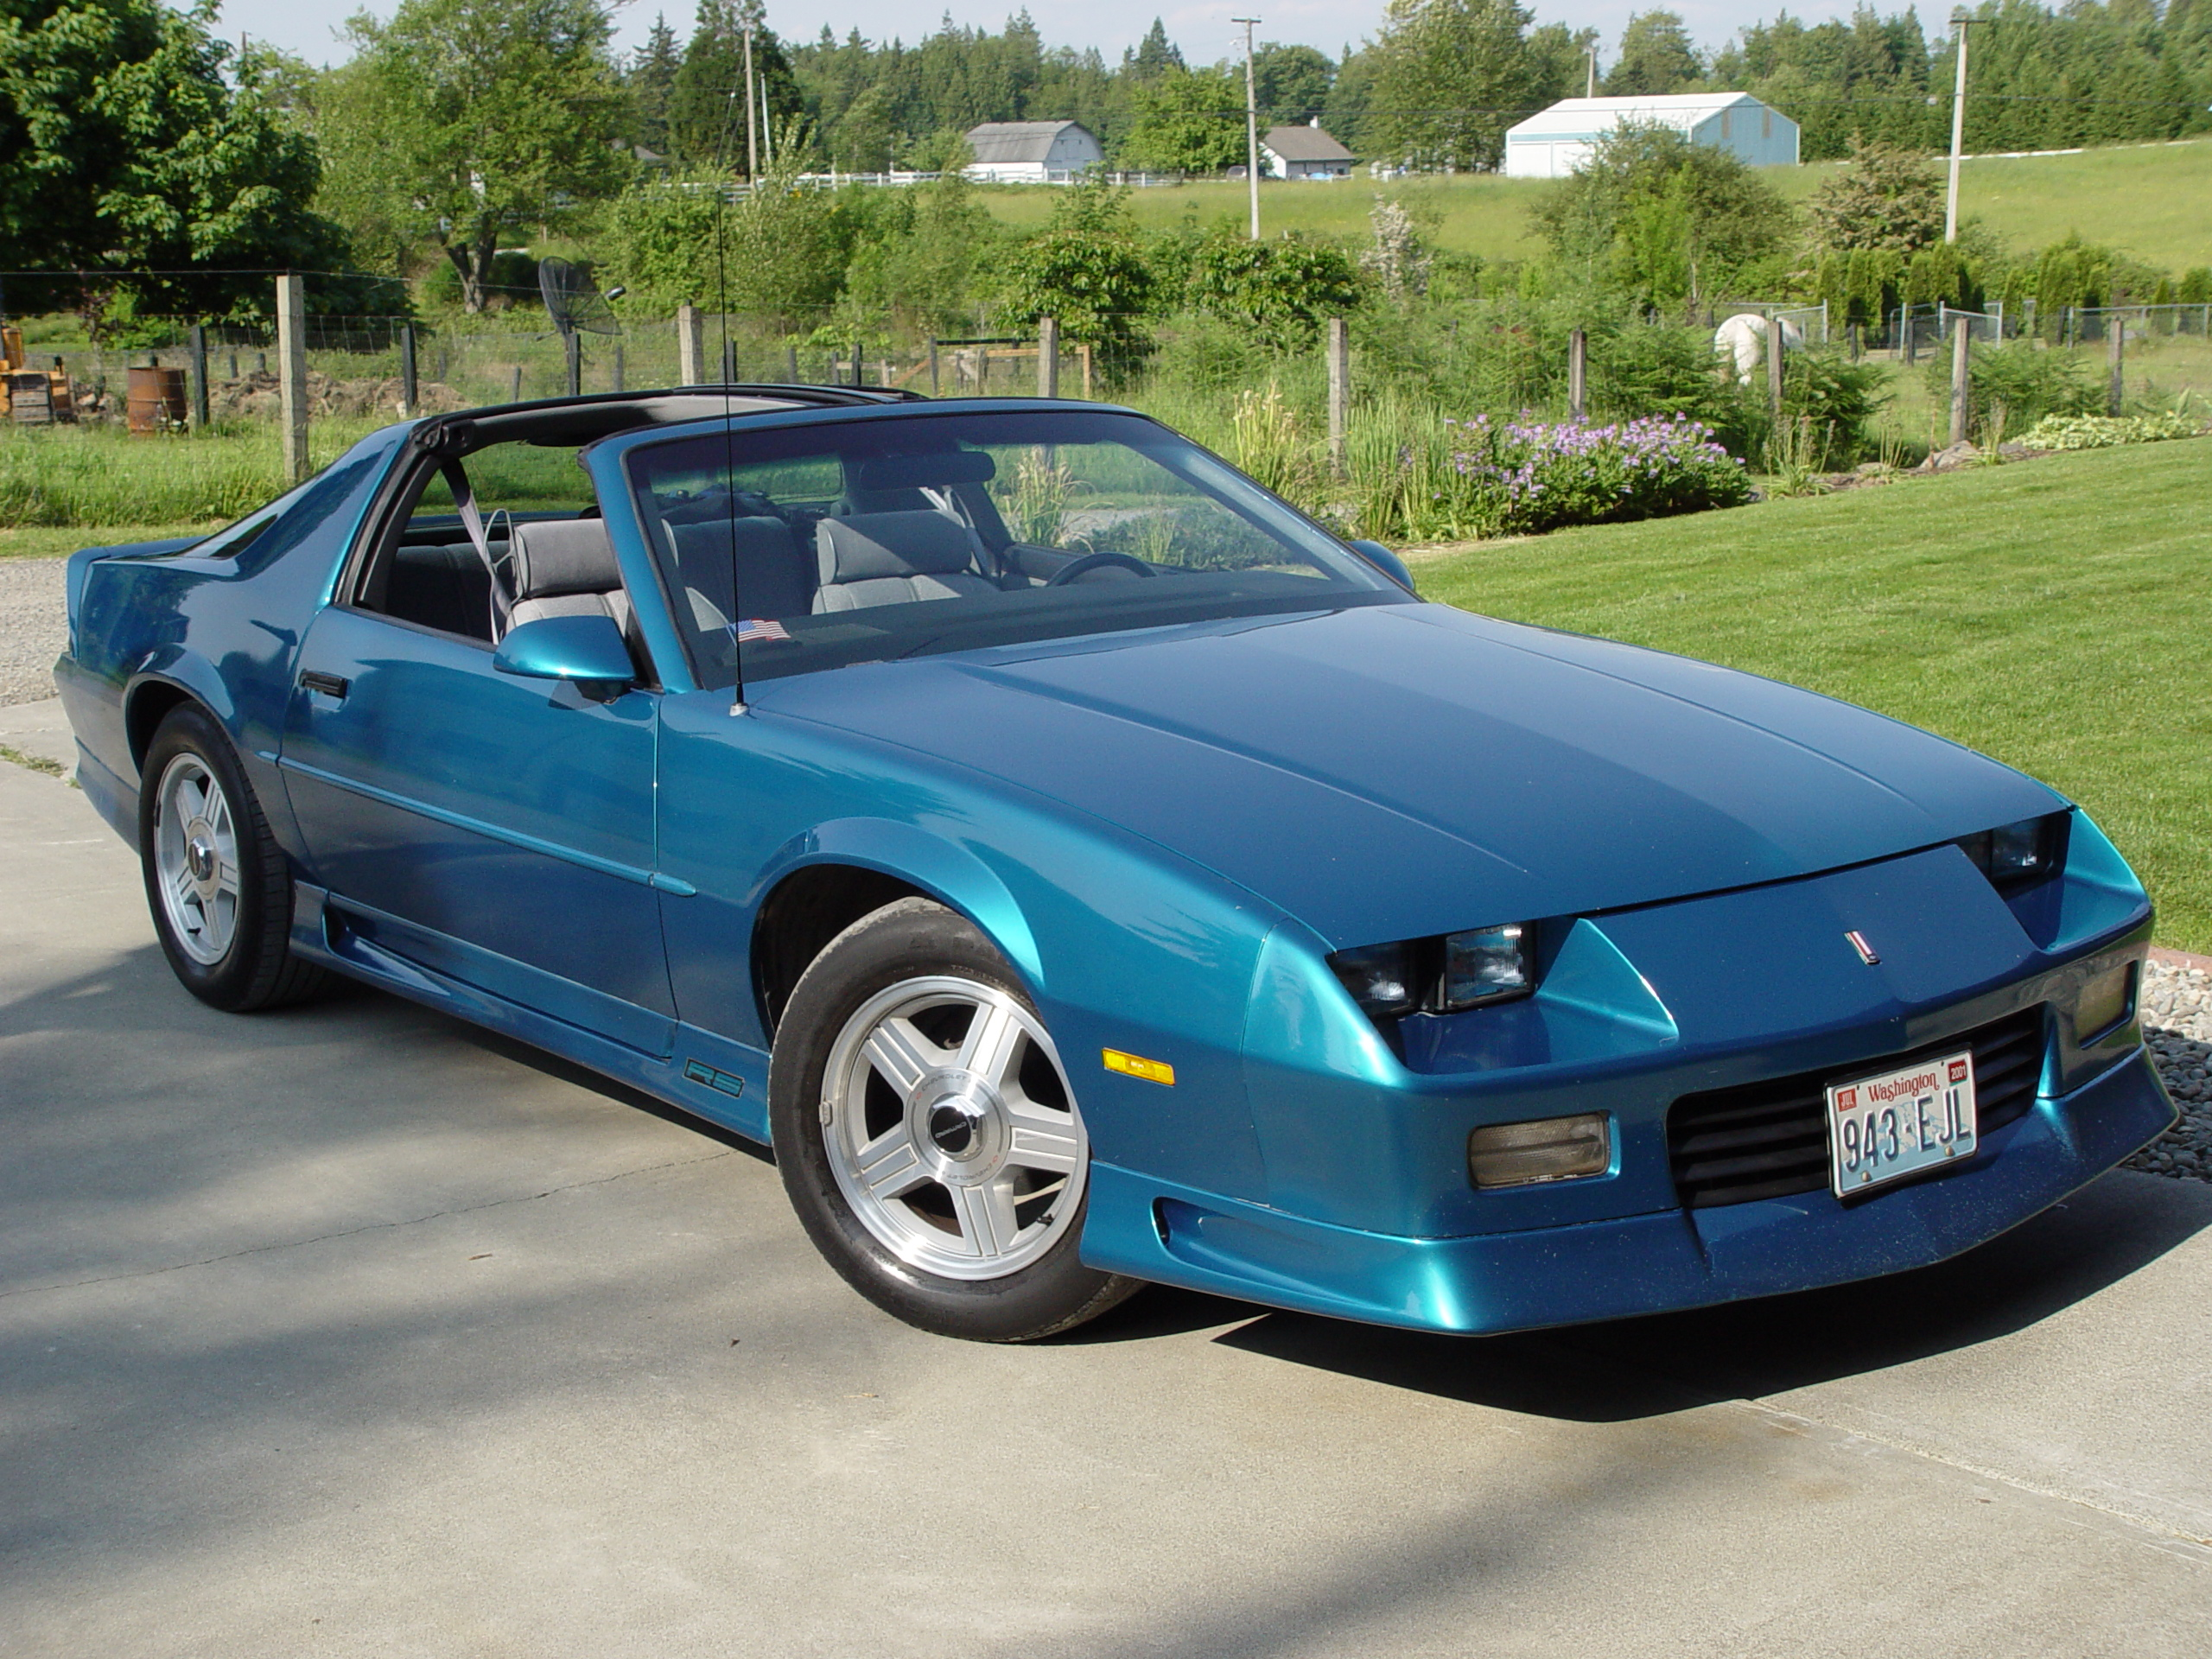 1992 chevrolet camaro information and photos zombiedrive. Black Bedroom Furniture Sets. Home Design Ideas